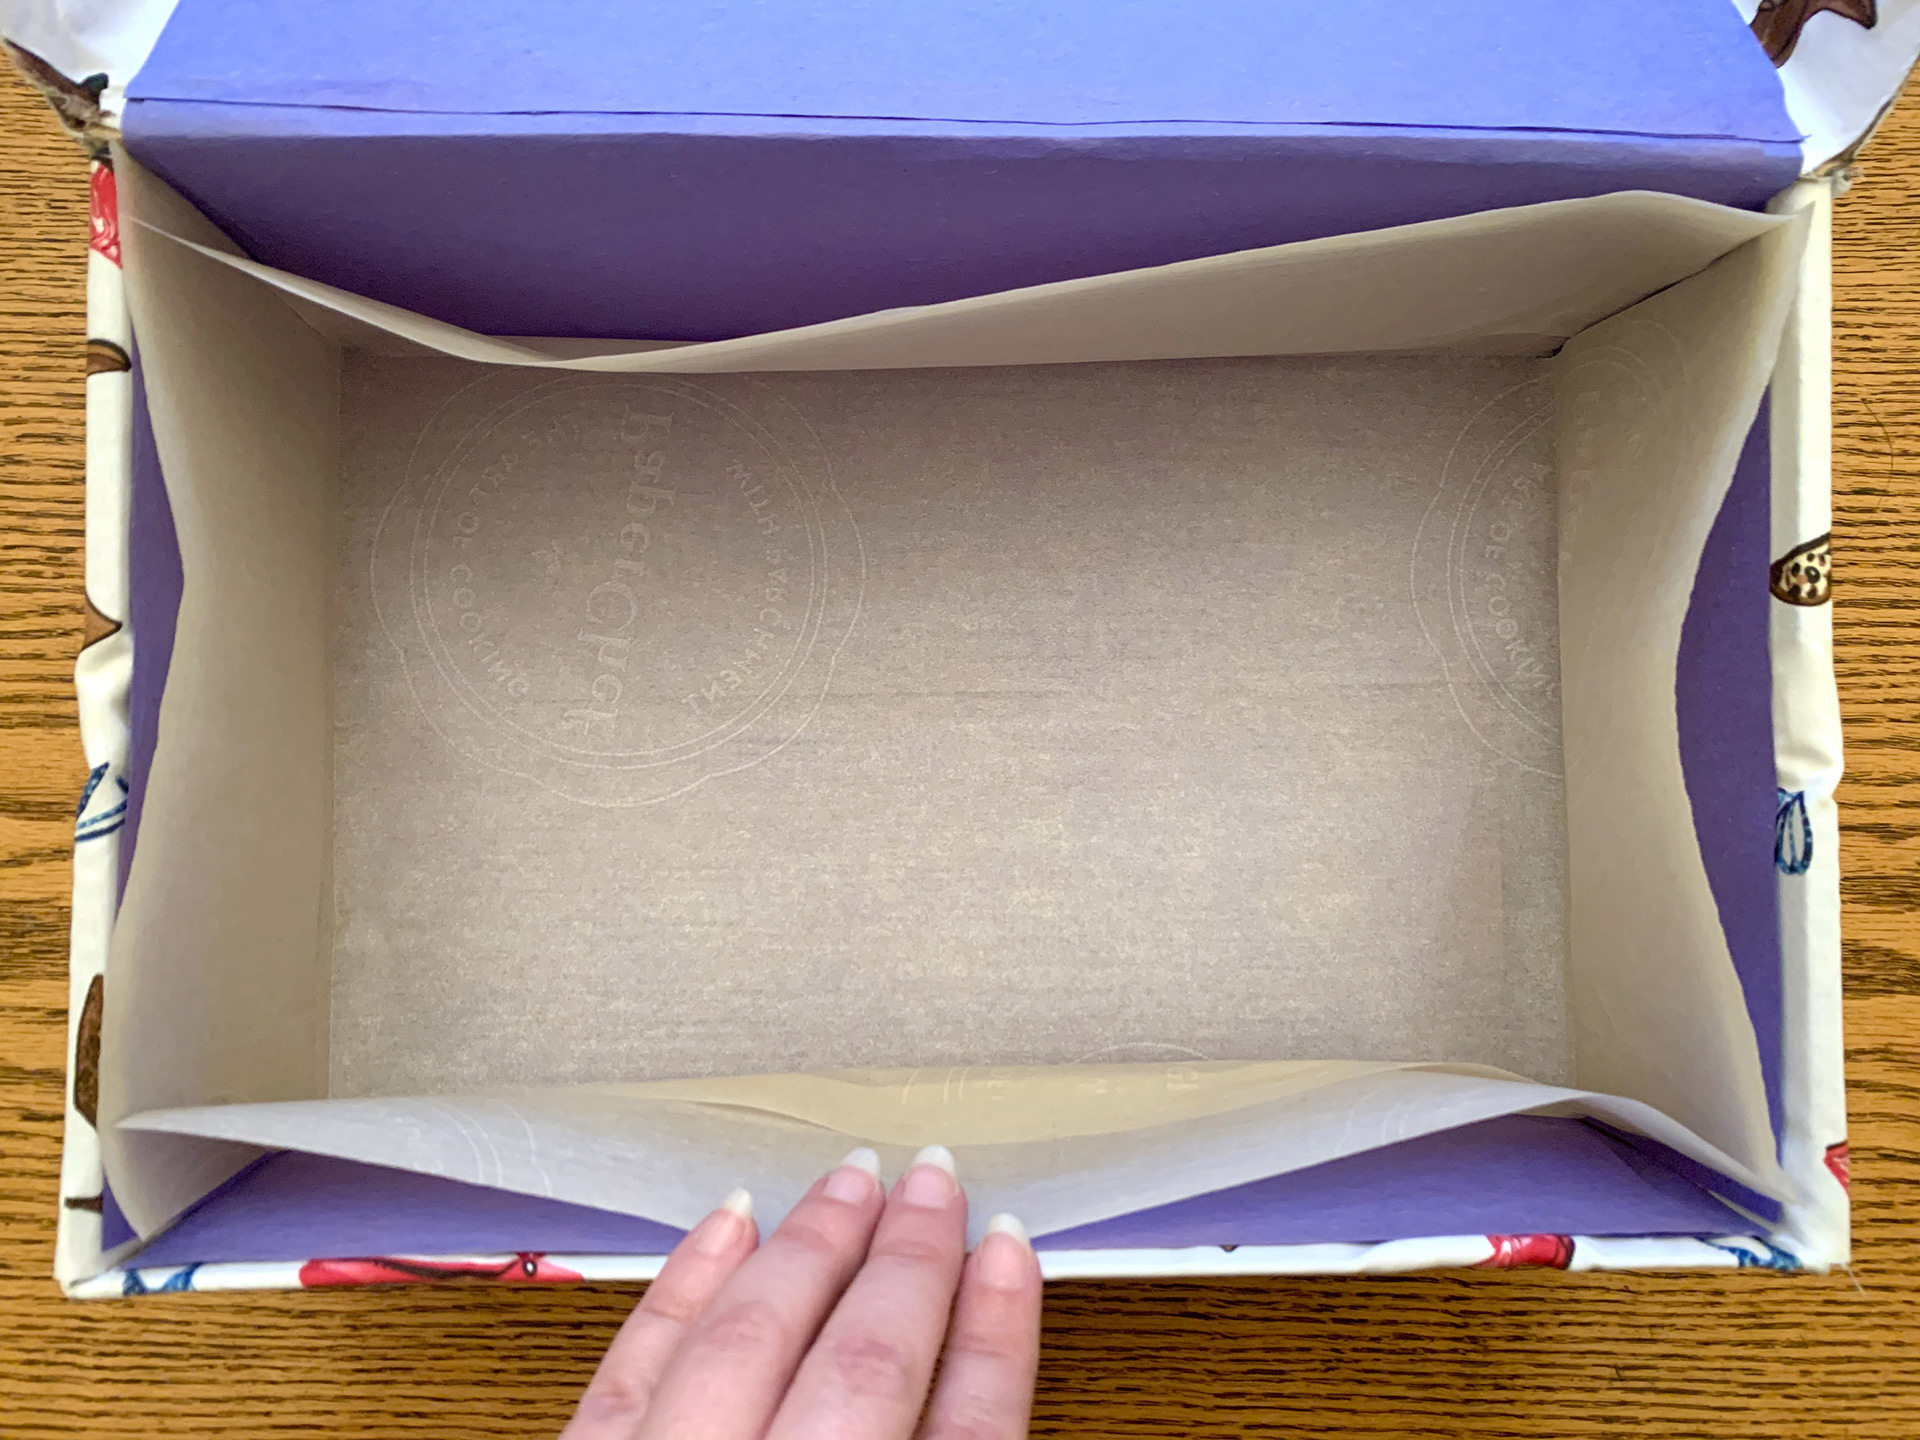 photo of the open box with parchment paper inside